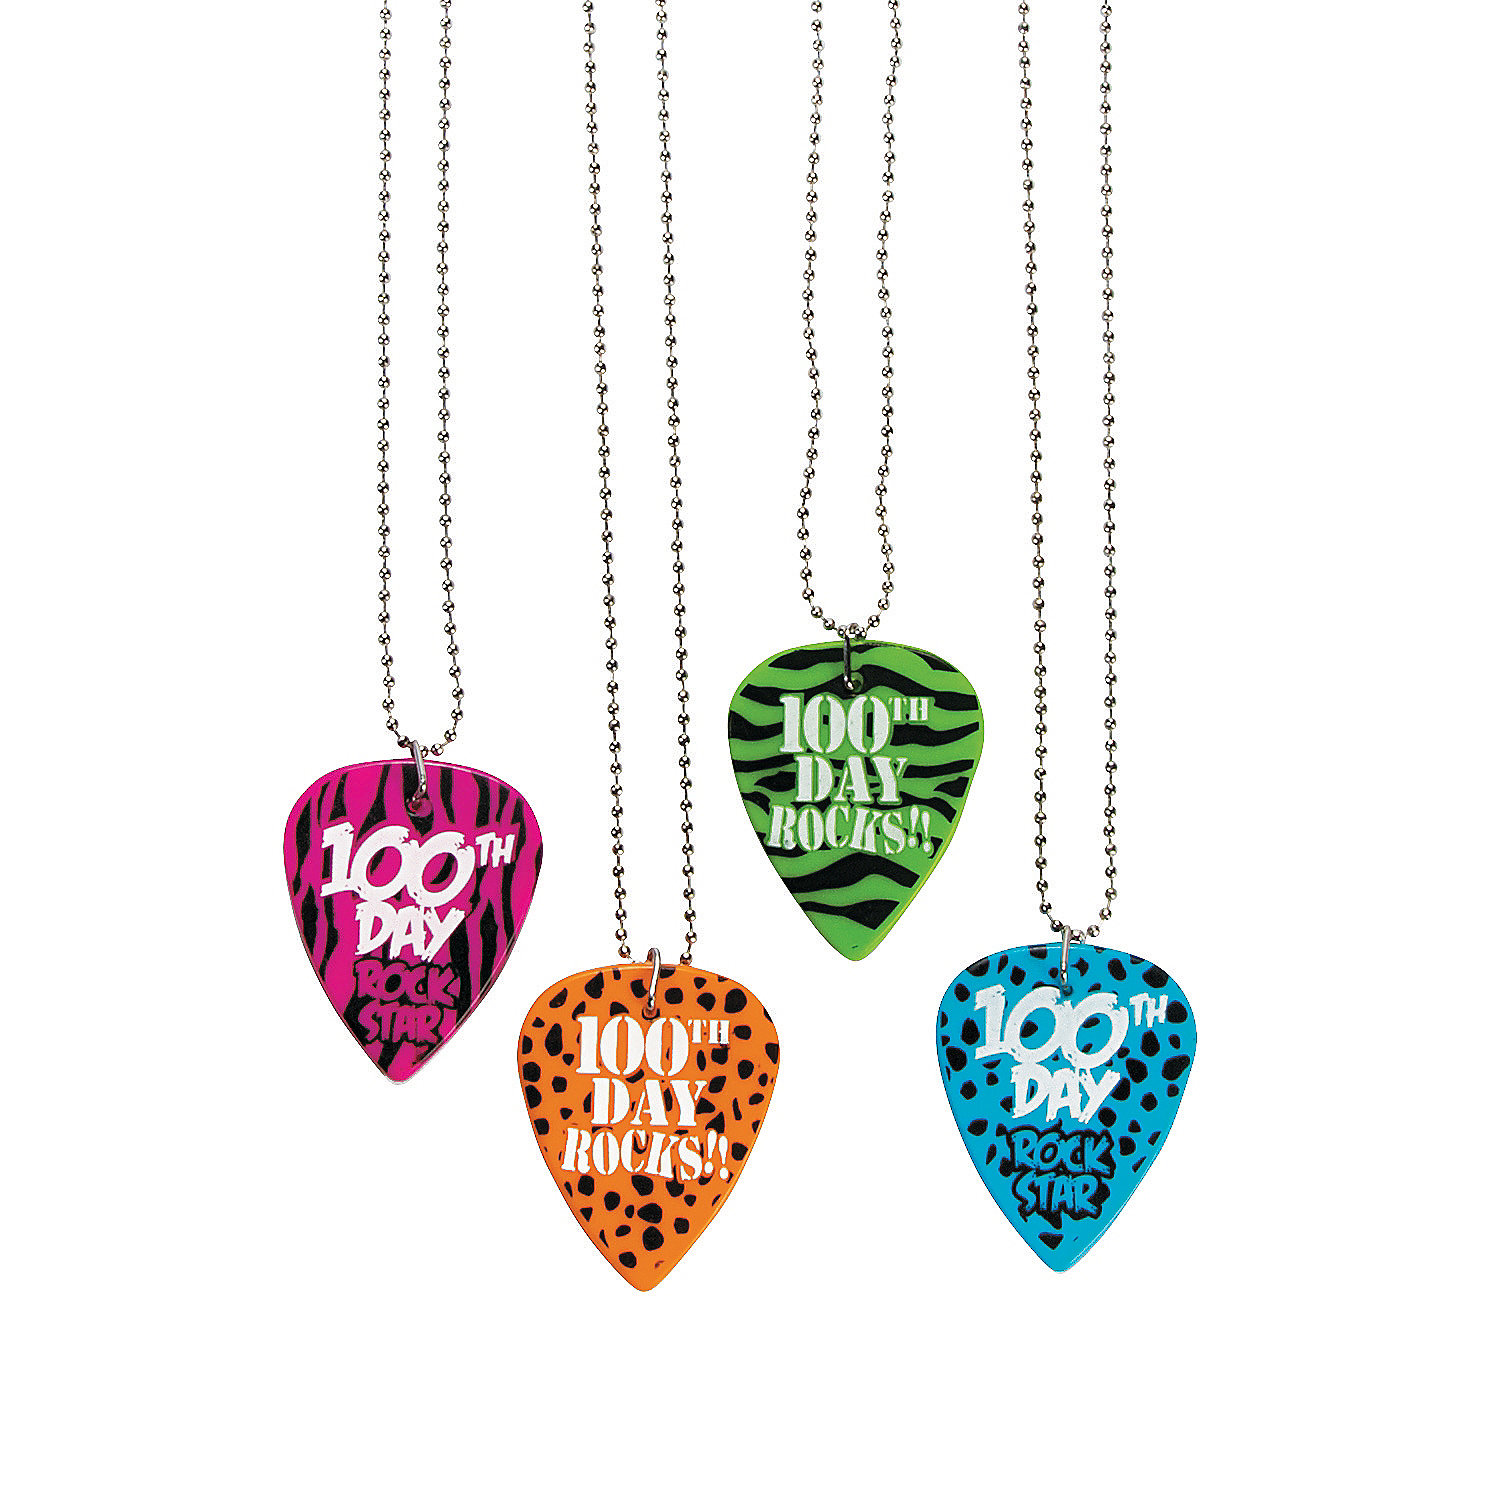 100th Day of School Guitar Pick Necklaces, Necklaces ...